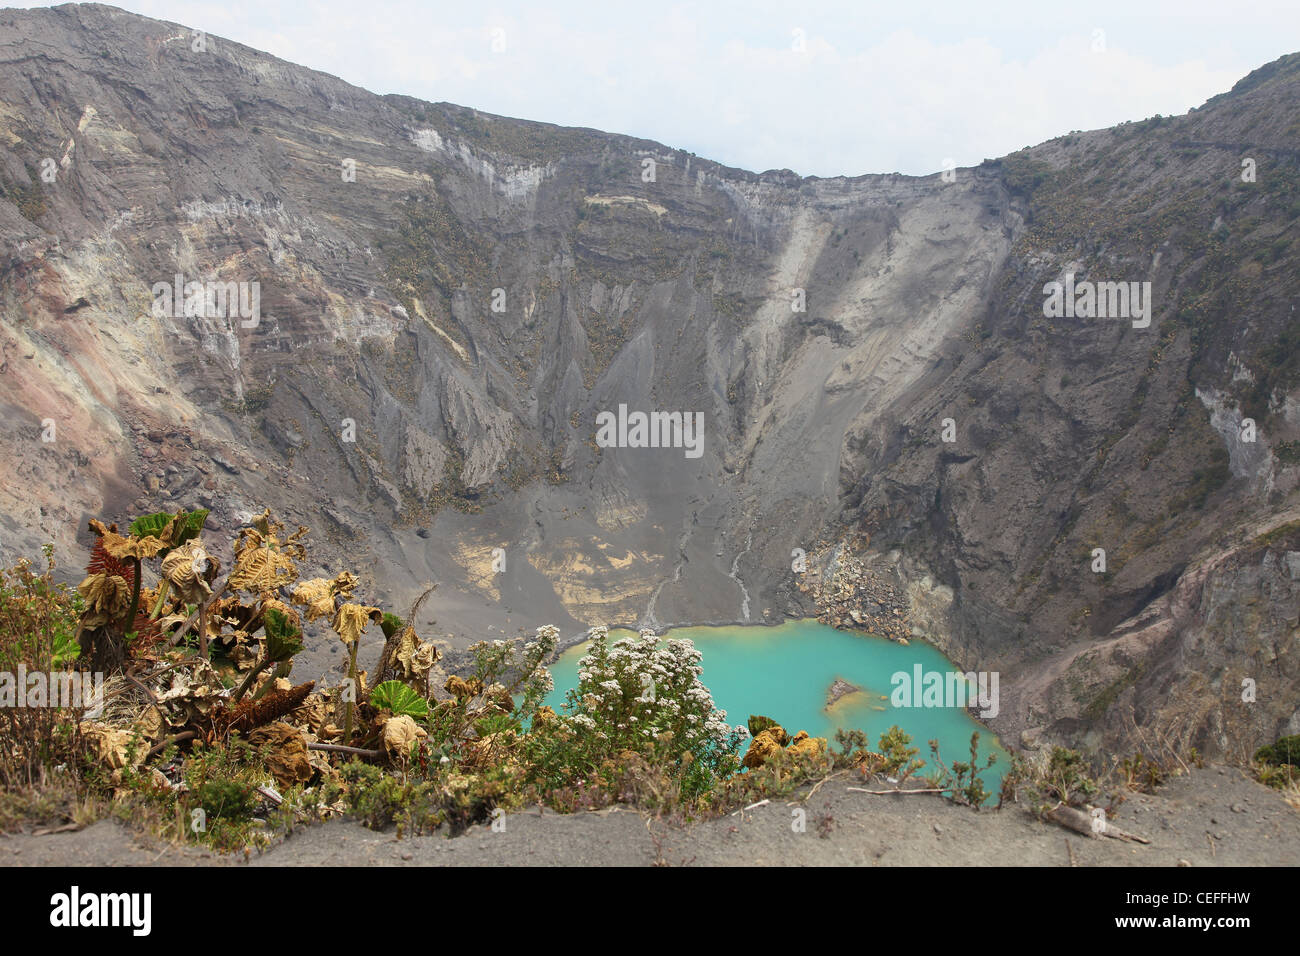 Lake in the caldera of Irazú Volcano or  Volcán Irazú active volcano in Costa Rica, Central America - Stock Image